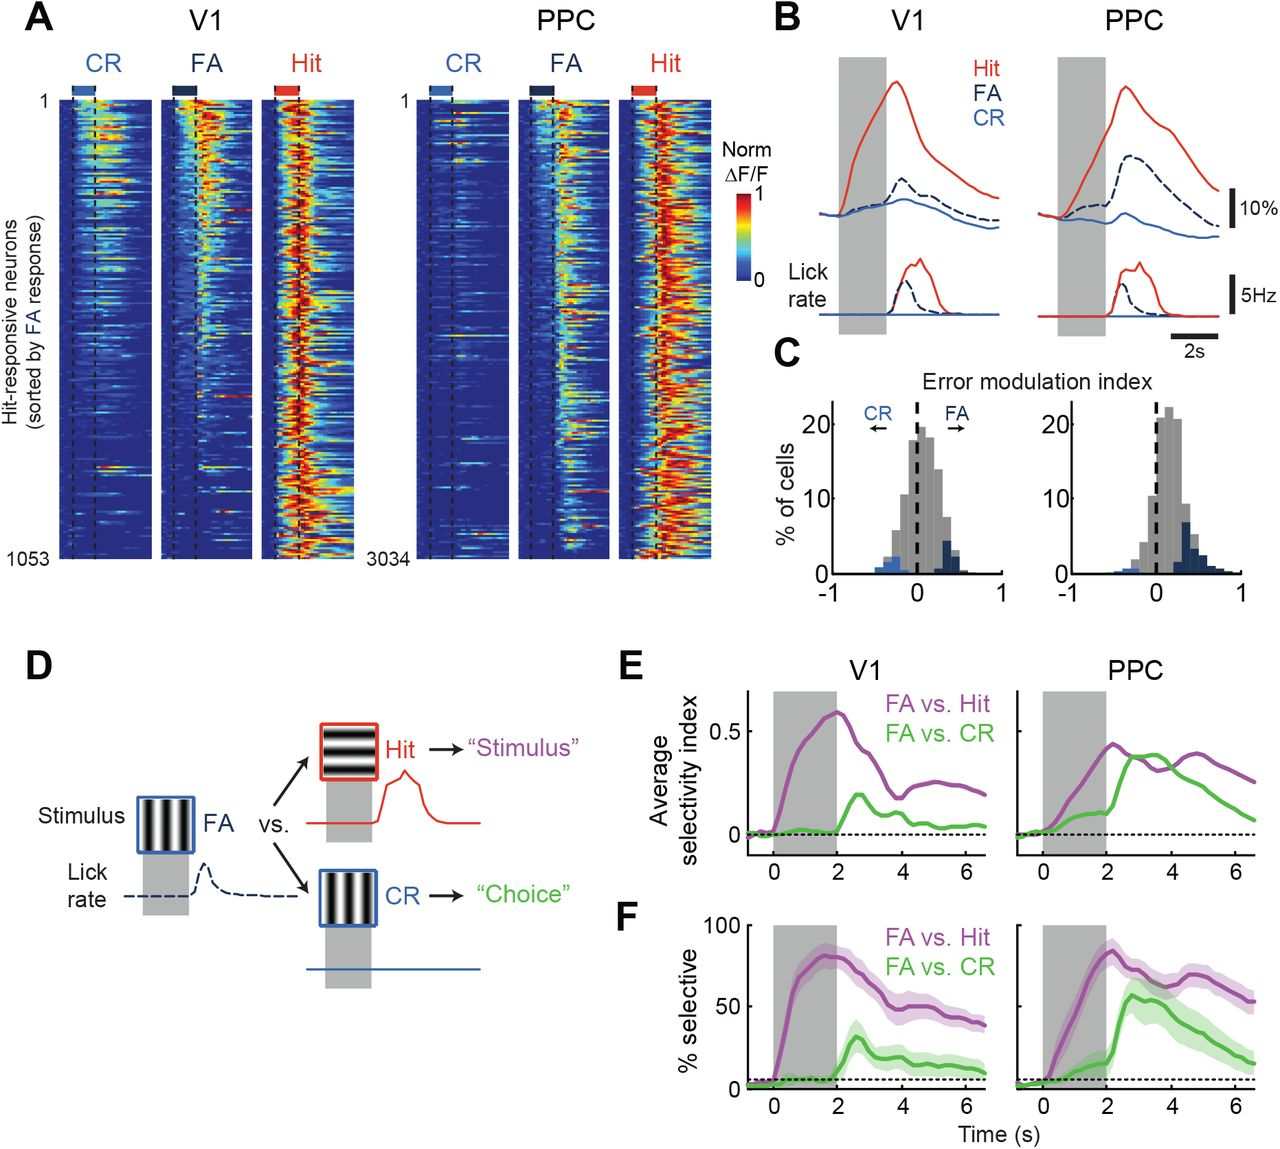 Task-dependent representations of stimulus and choice in mouse